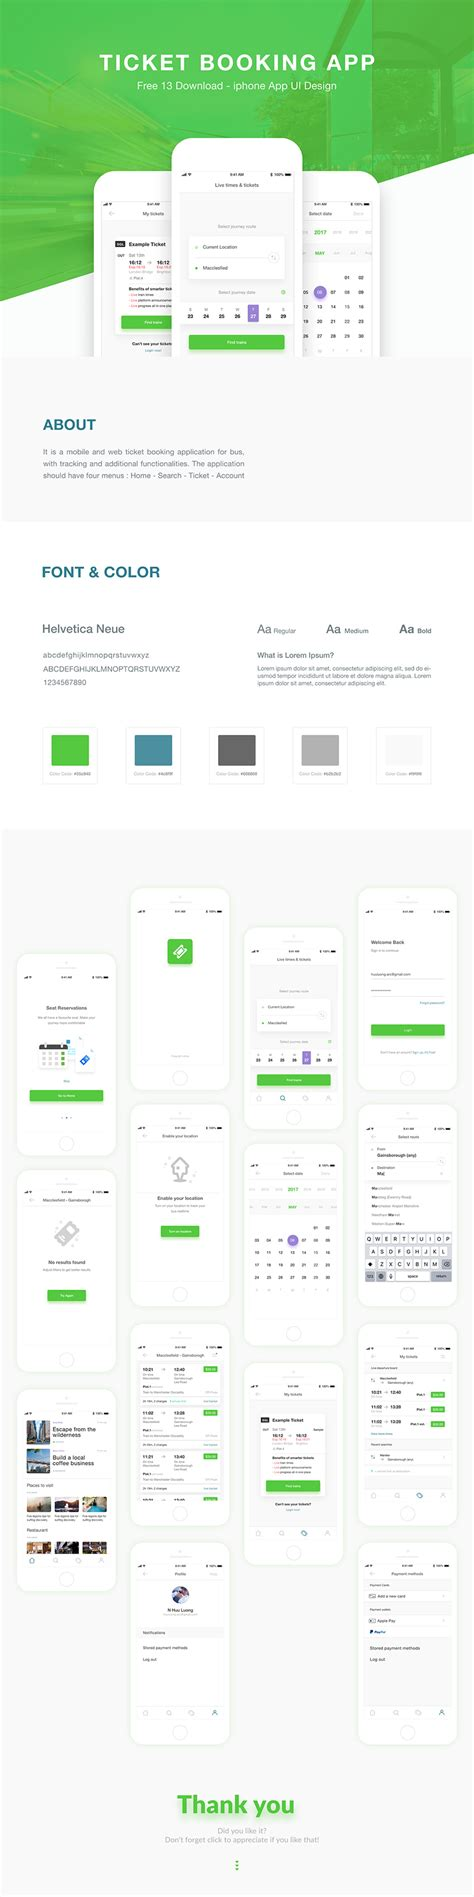 picture ticket booking ticket booking app design ui kit free xd